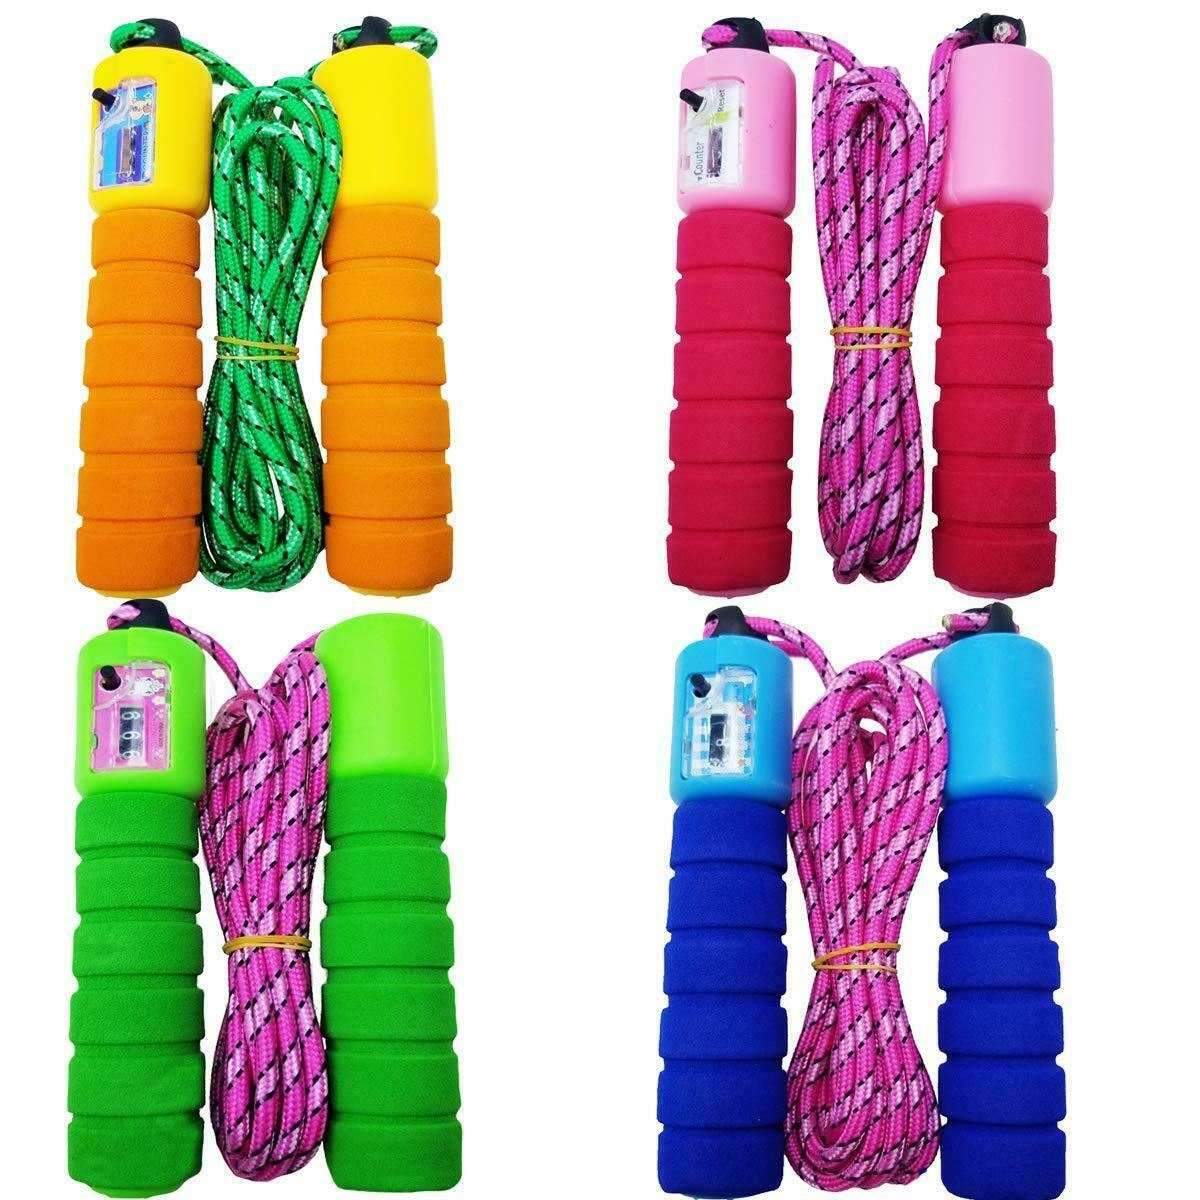 Kids Wooden Skipping Rope Children Exercise Jumping Game Fitness Boxing Gym NEW